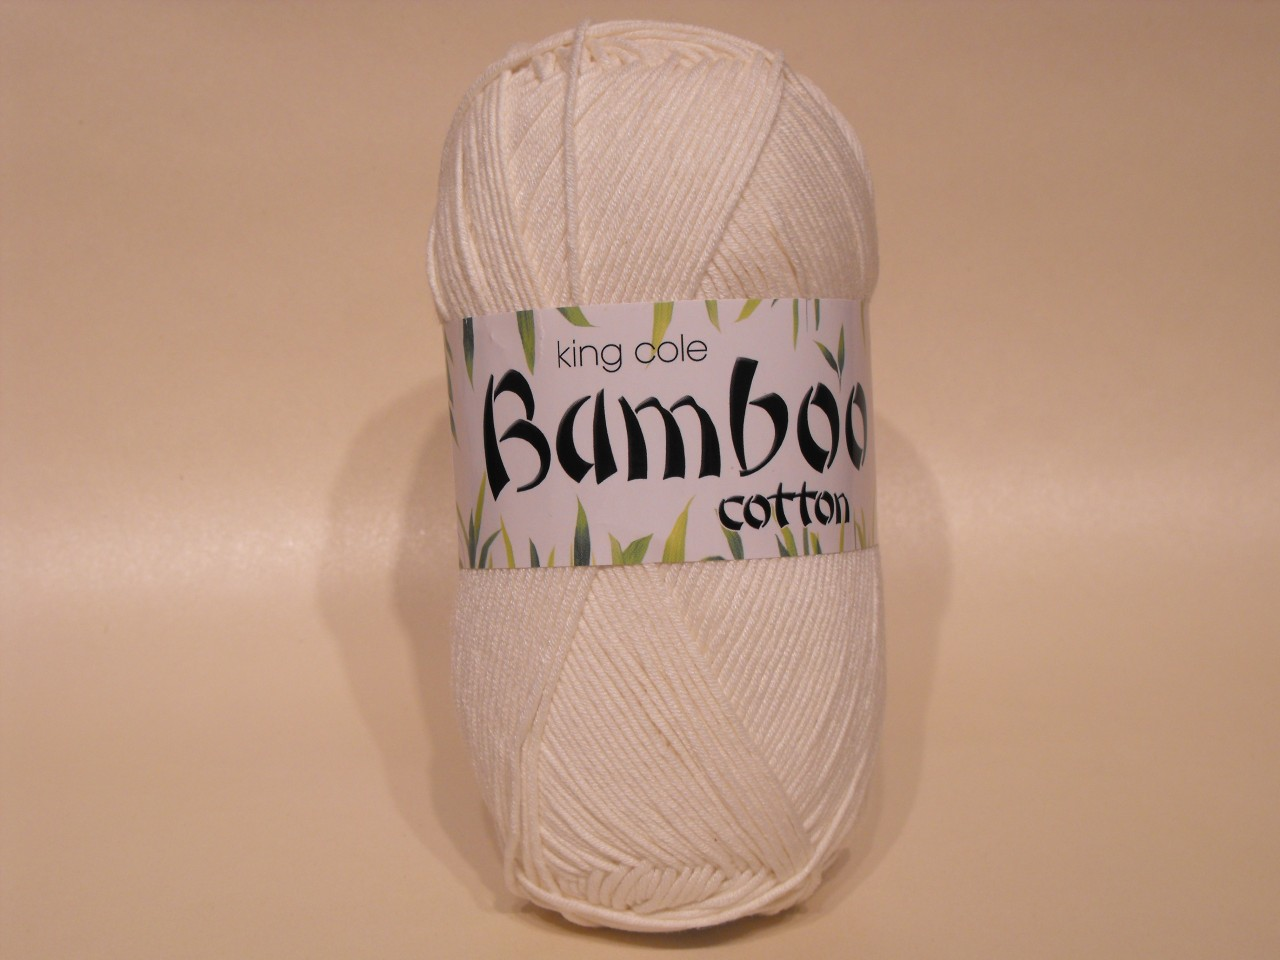 King Cole Bamboo Cotton Double Knit yarn in Cream